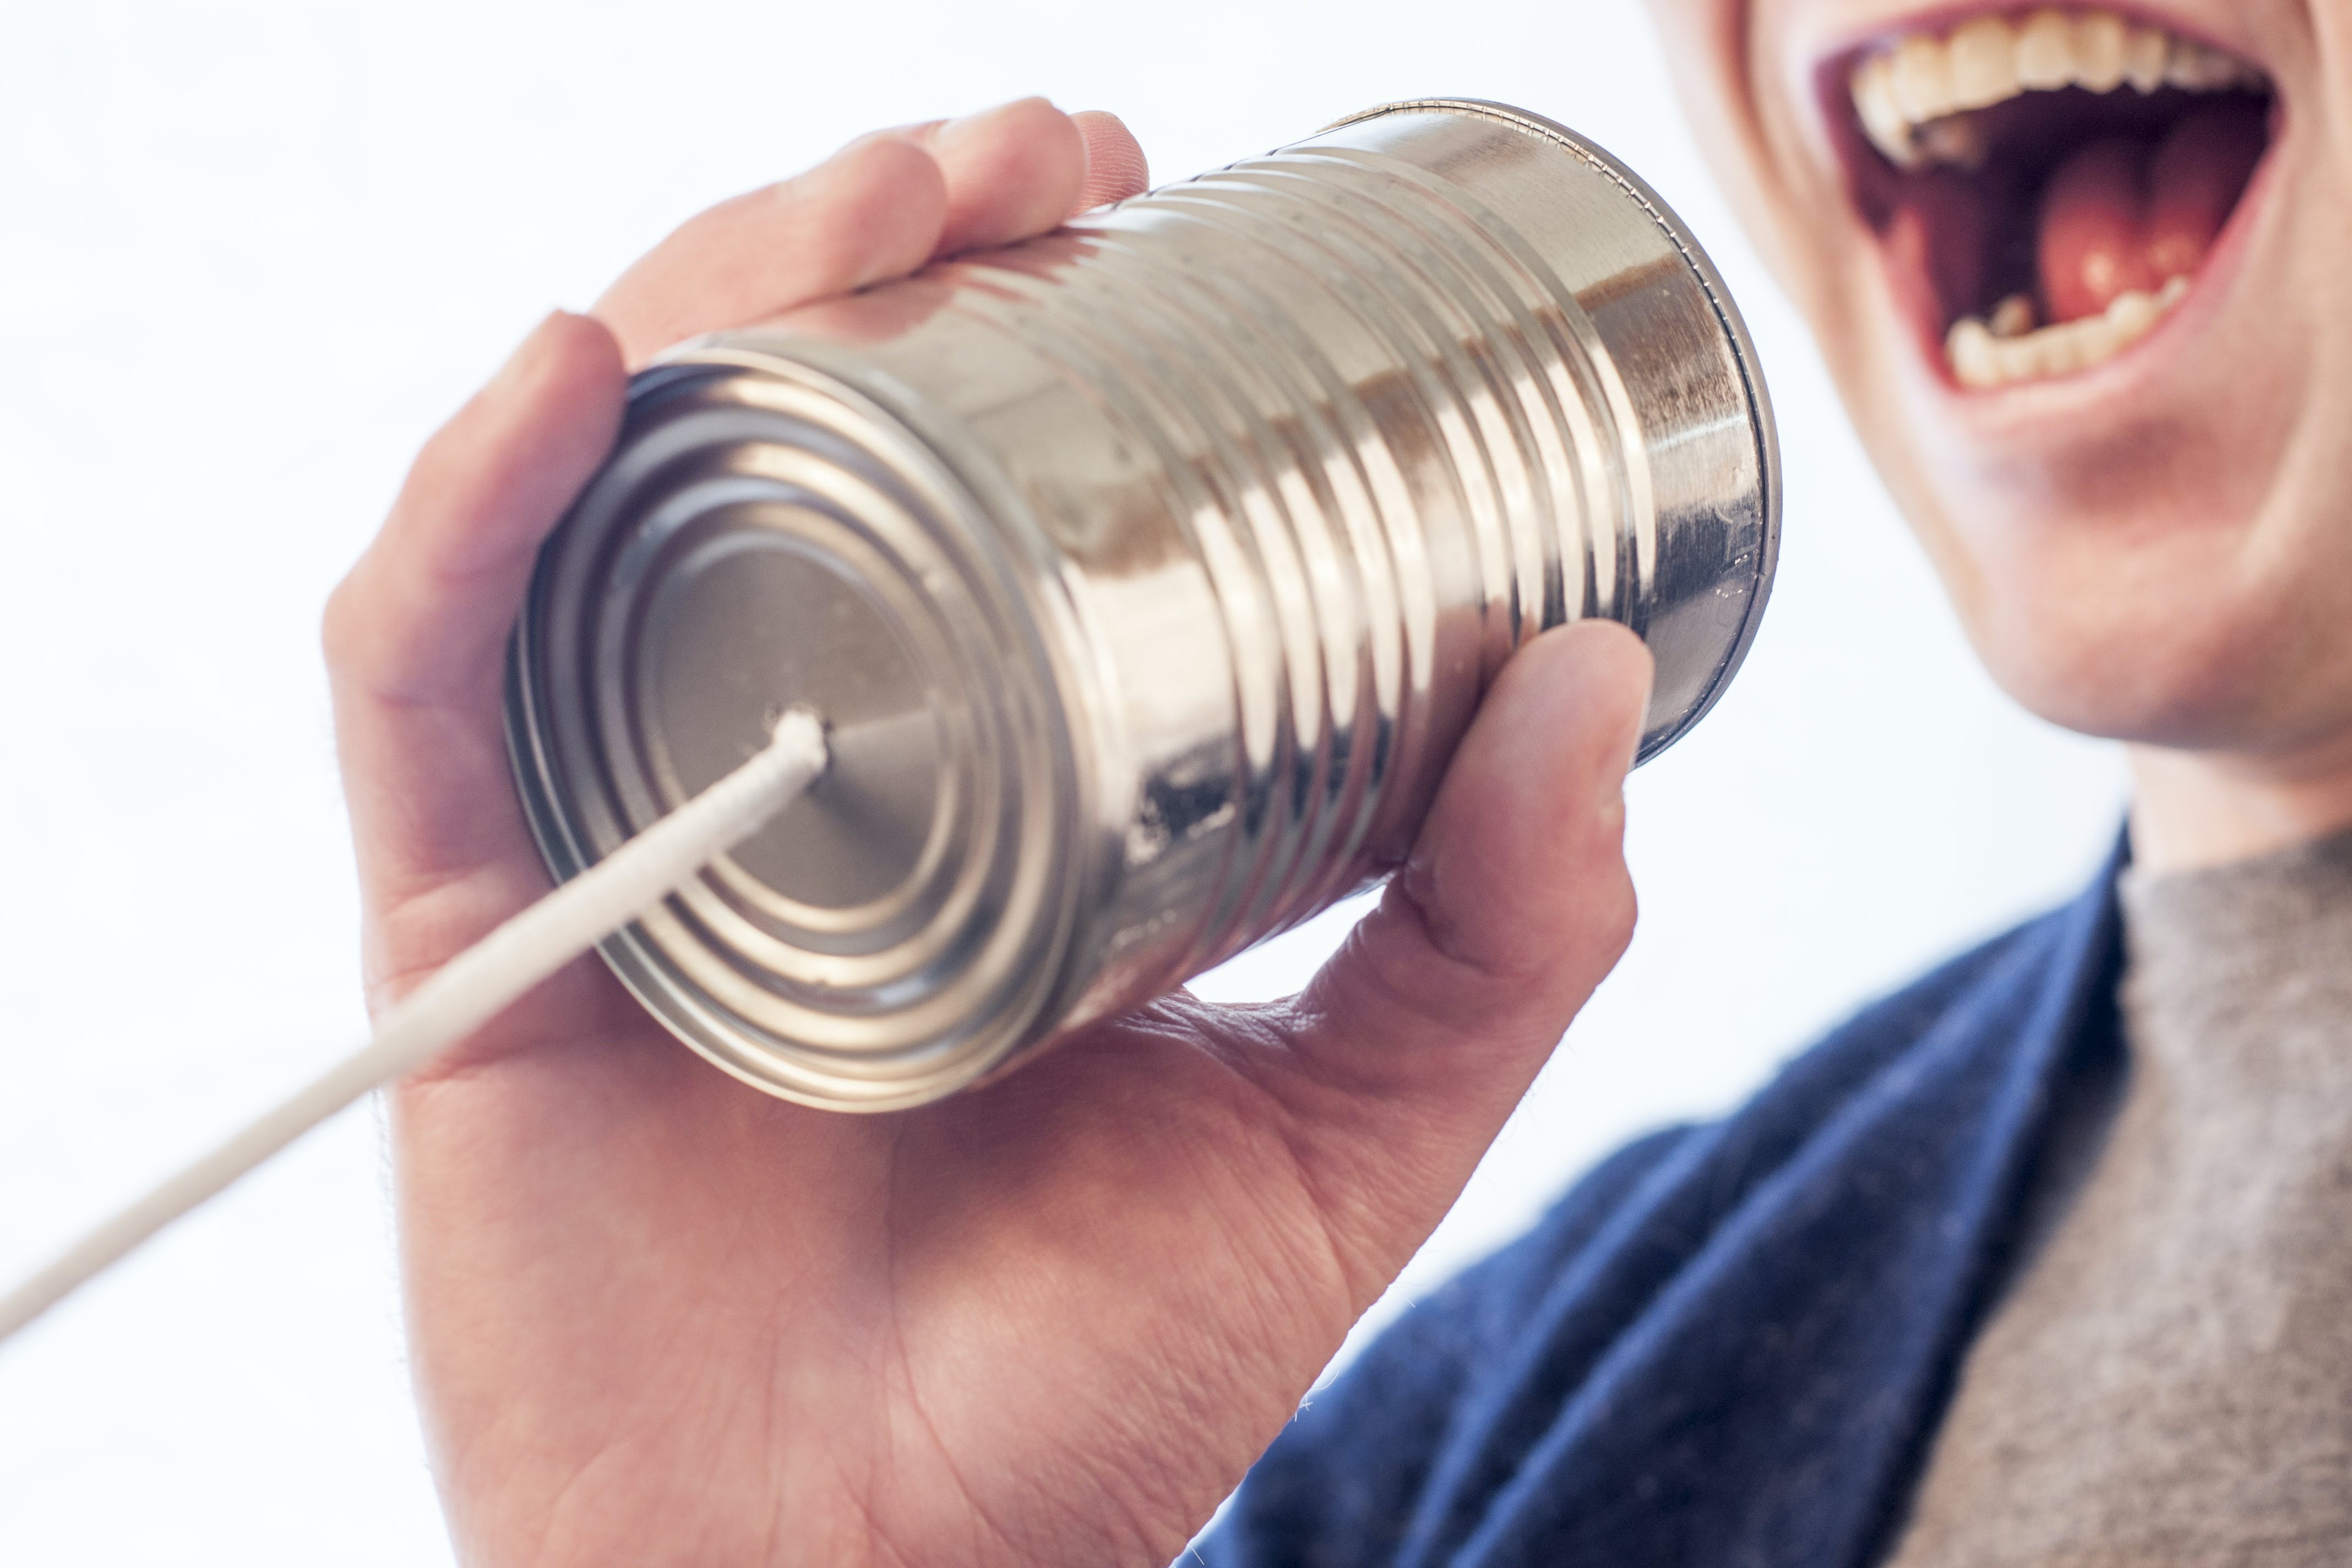 A tin can telephone - do not use it for communication during moving your office to Fort Lauderdale.